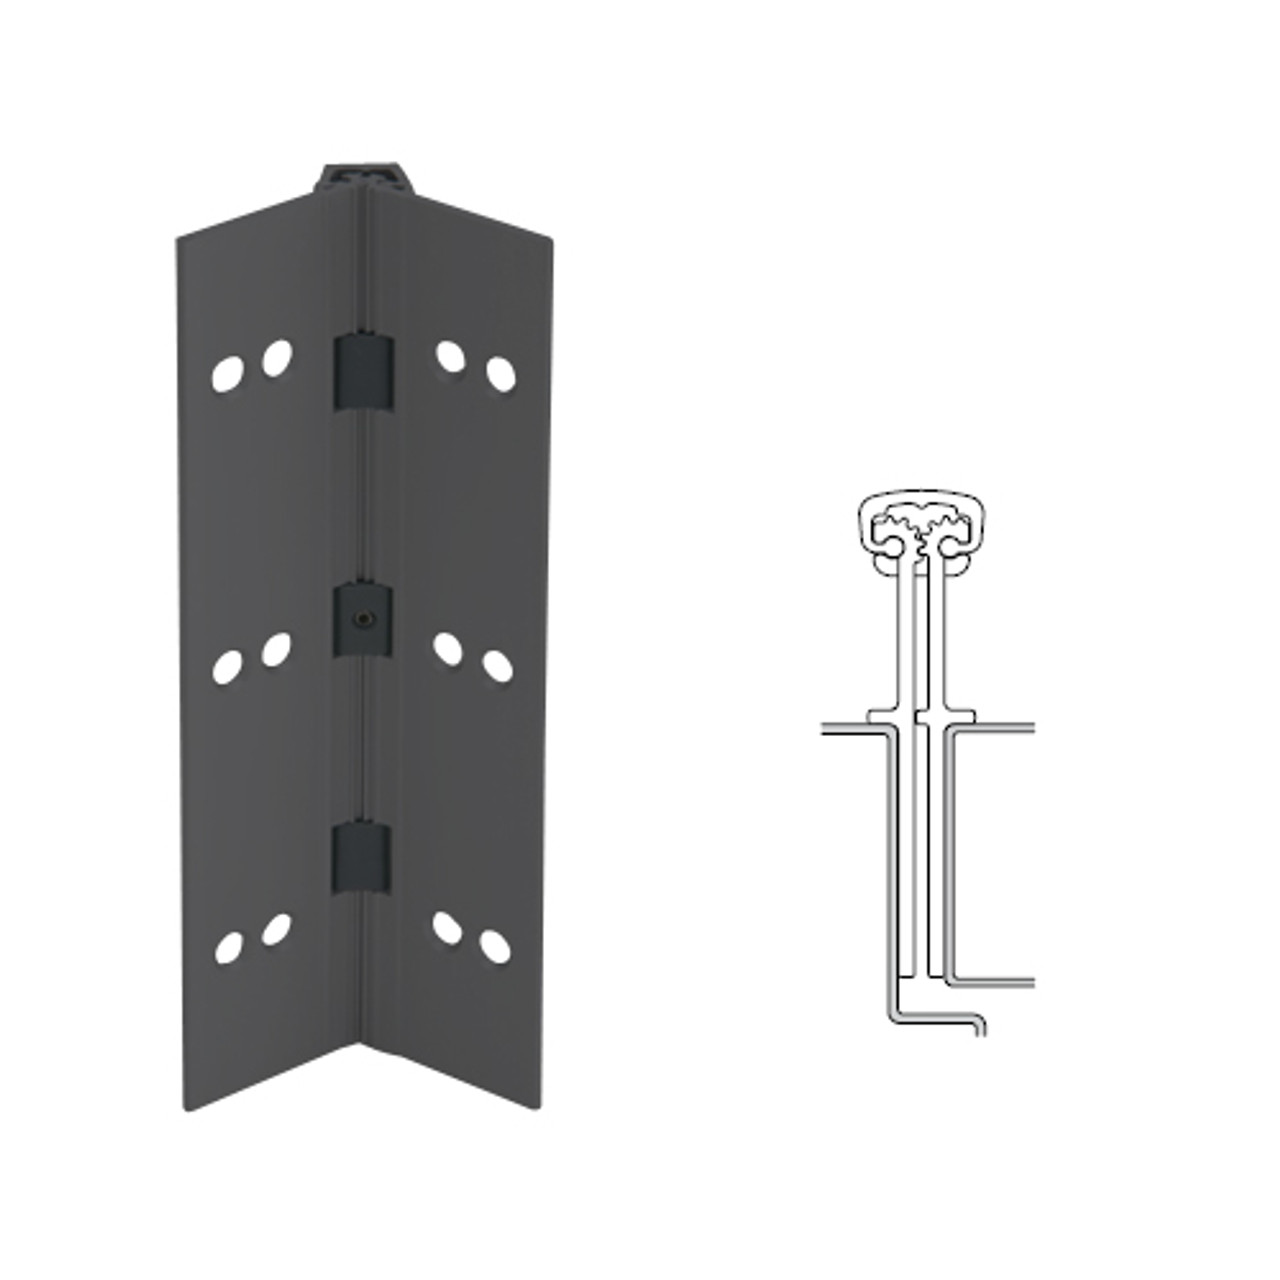 040XY-315AN-95-WD IVES Full Mortise Continuous Geared Hinges with Wood Screws in Anodized Black